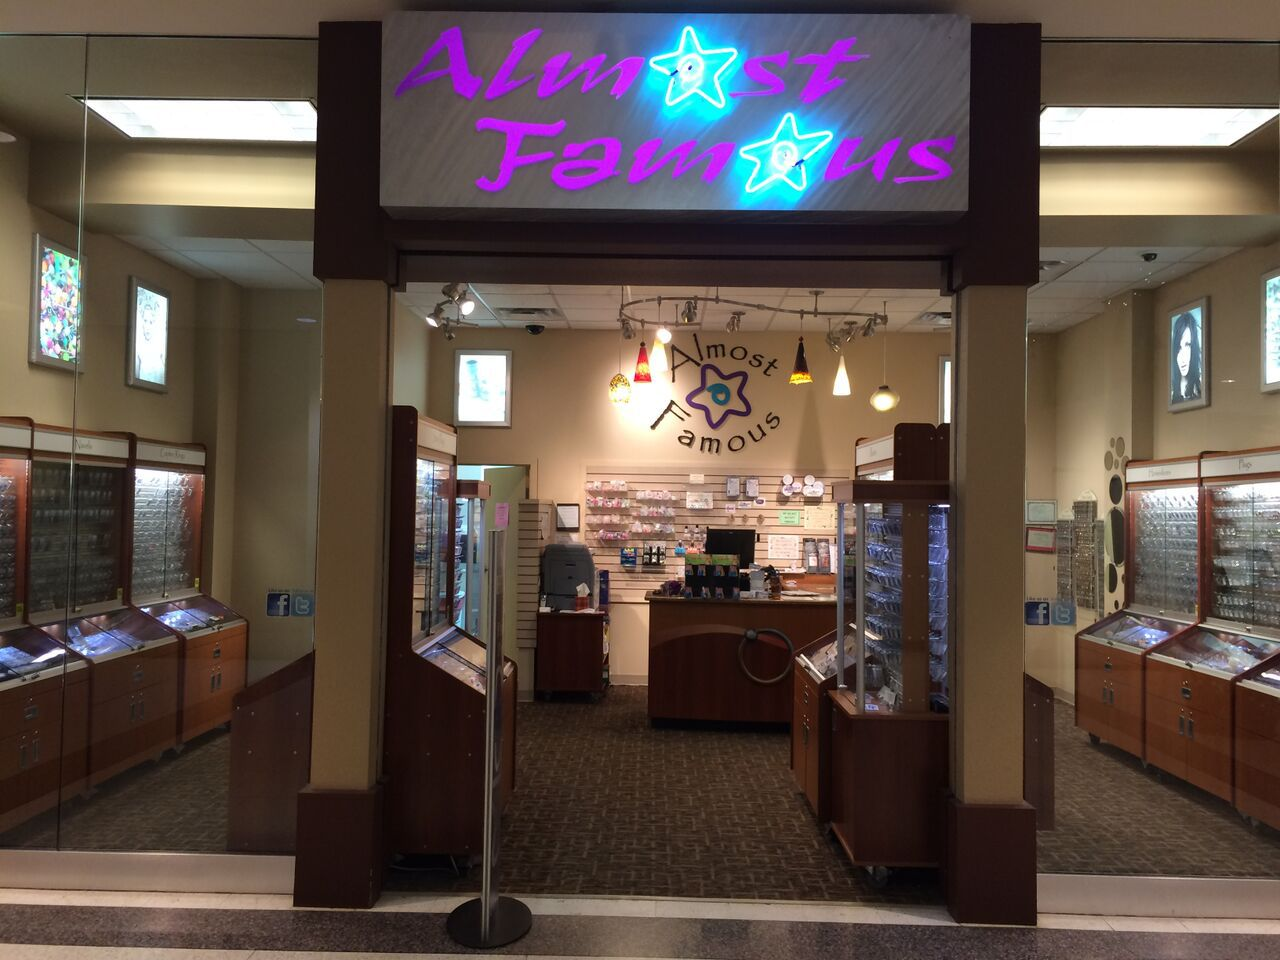 Fargo Store - Almost Famous Body Piercings